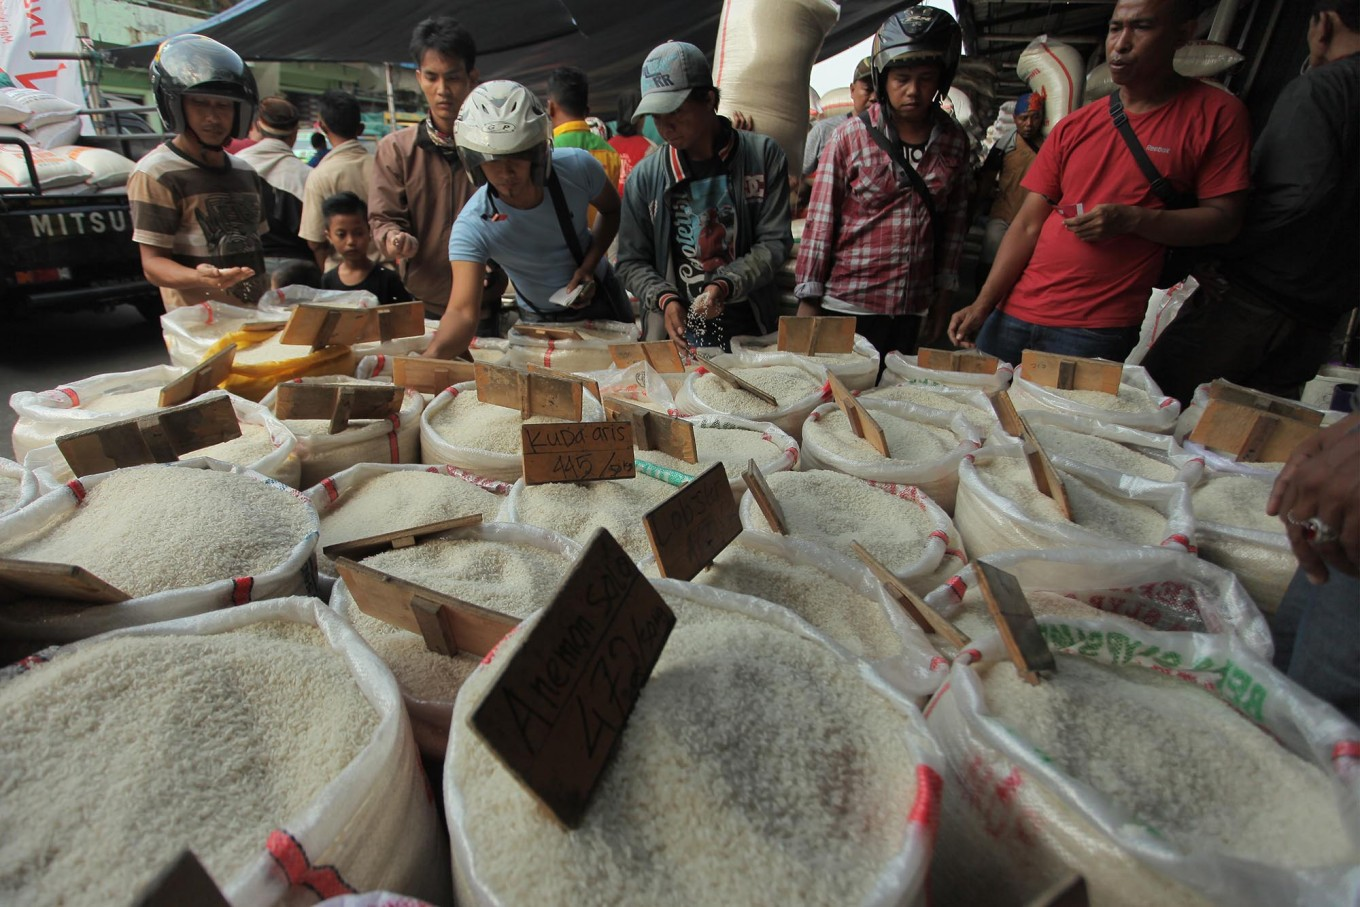 Getting richer, more Indonesians shift to premium rice